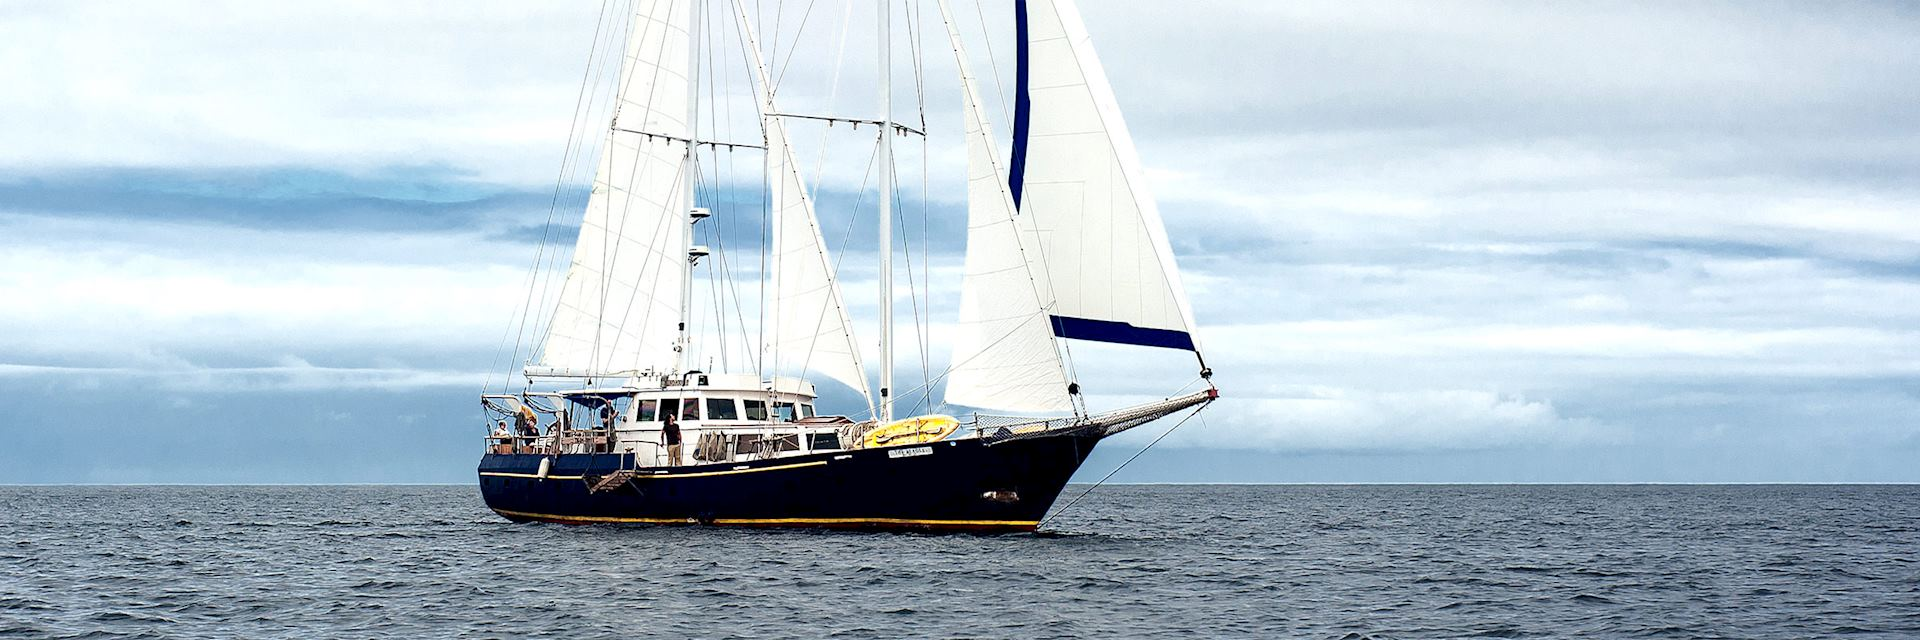 The Beagle yacht, Galapagos Islands